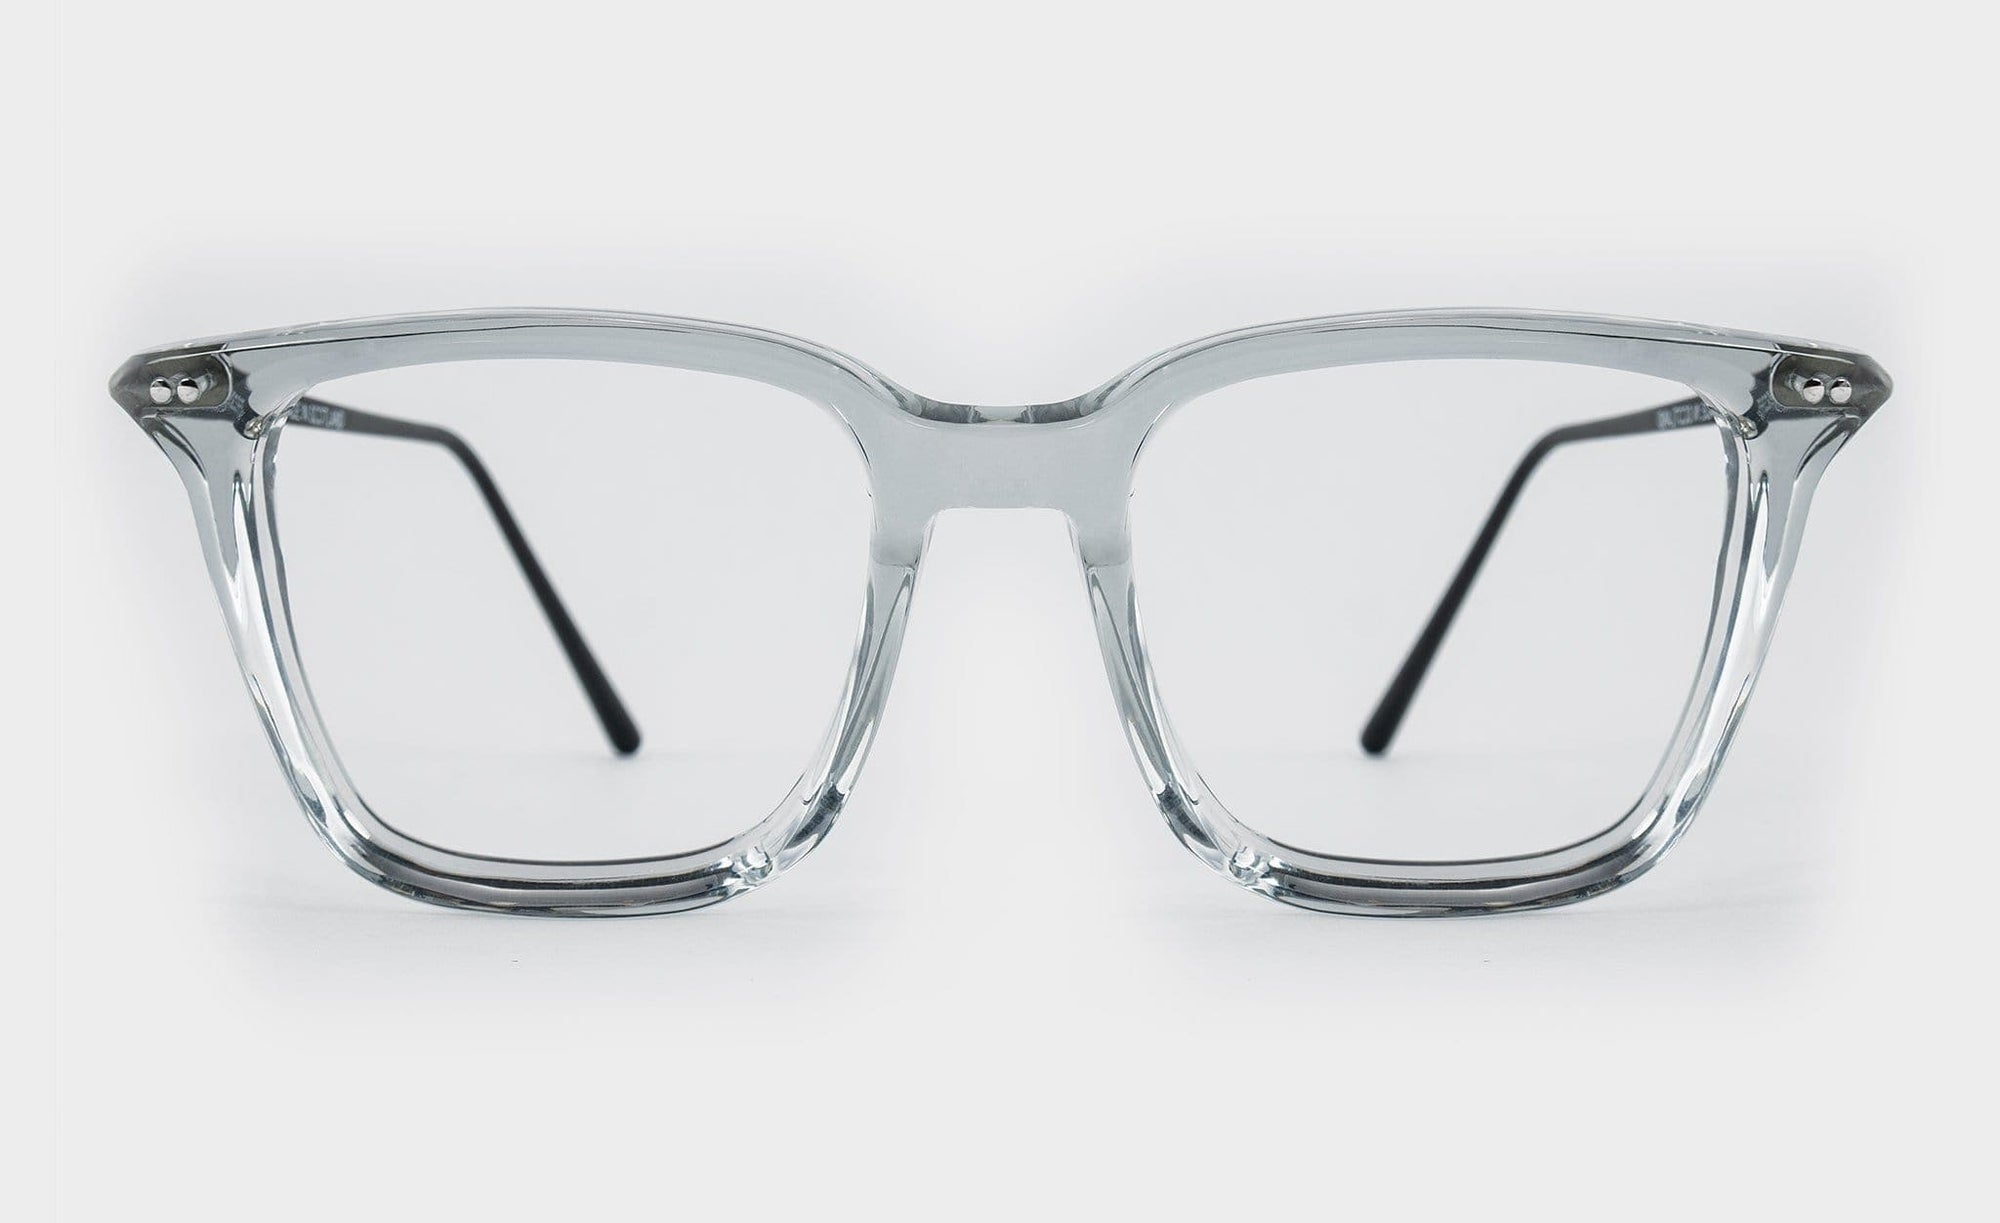 Glasses Frame: A-GRY